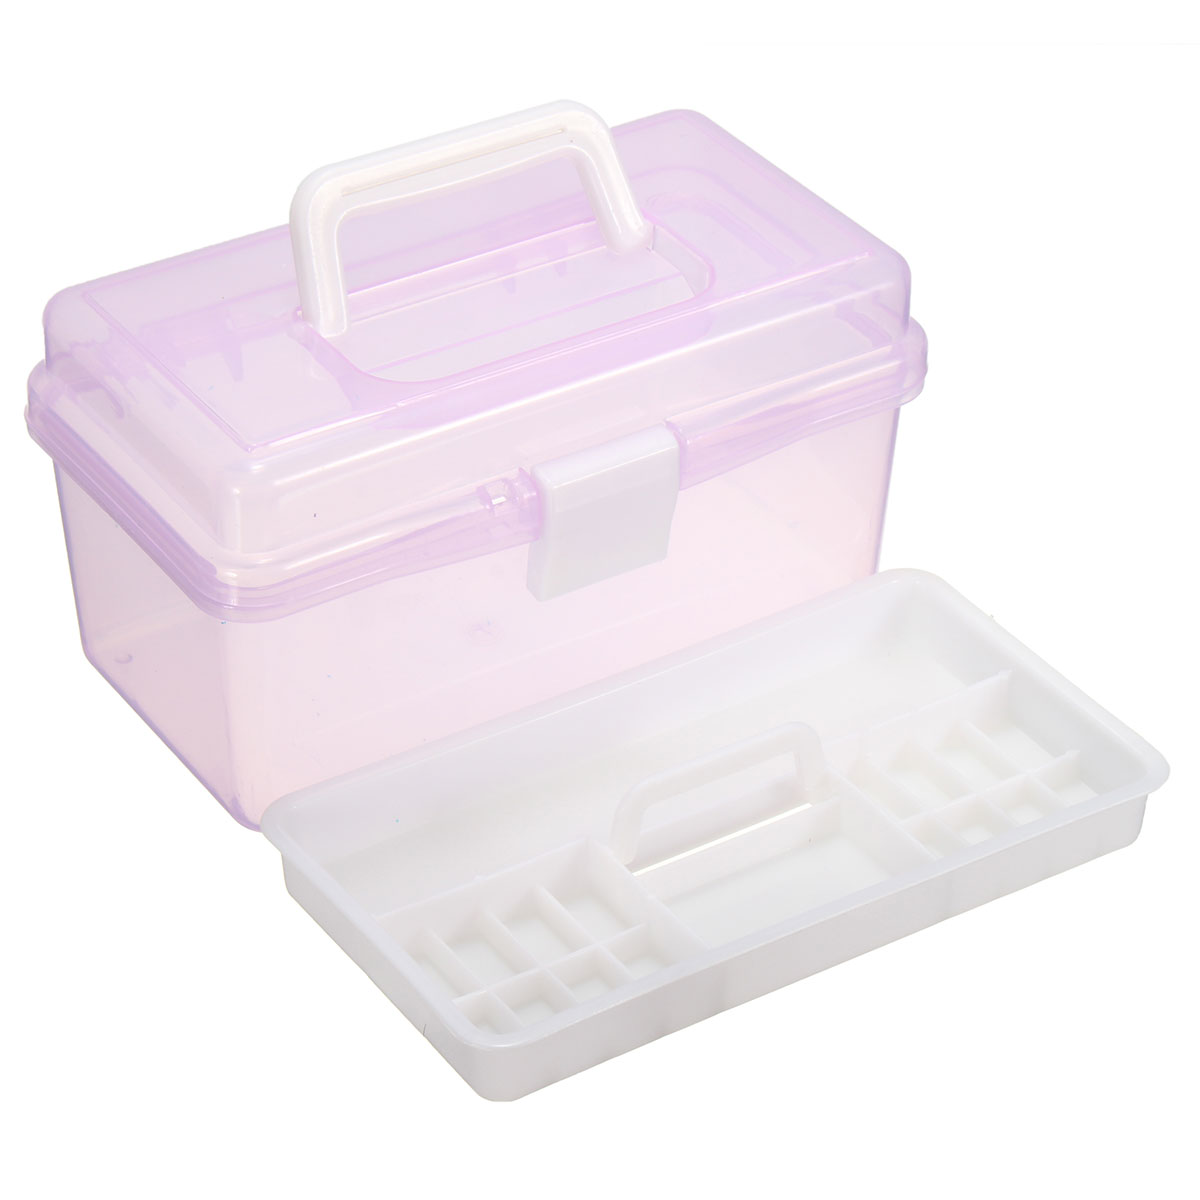 Plastic Two Double 2 Layer Storage Case Box Nail Art Craft Screws